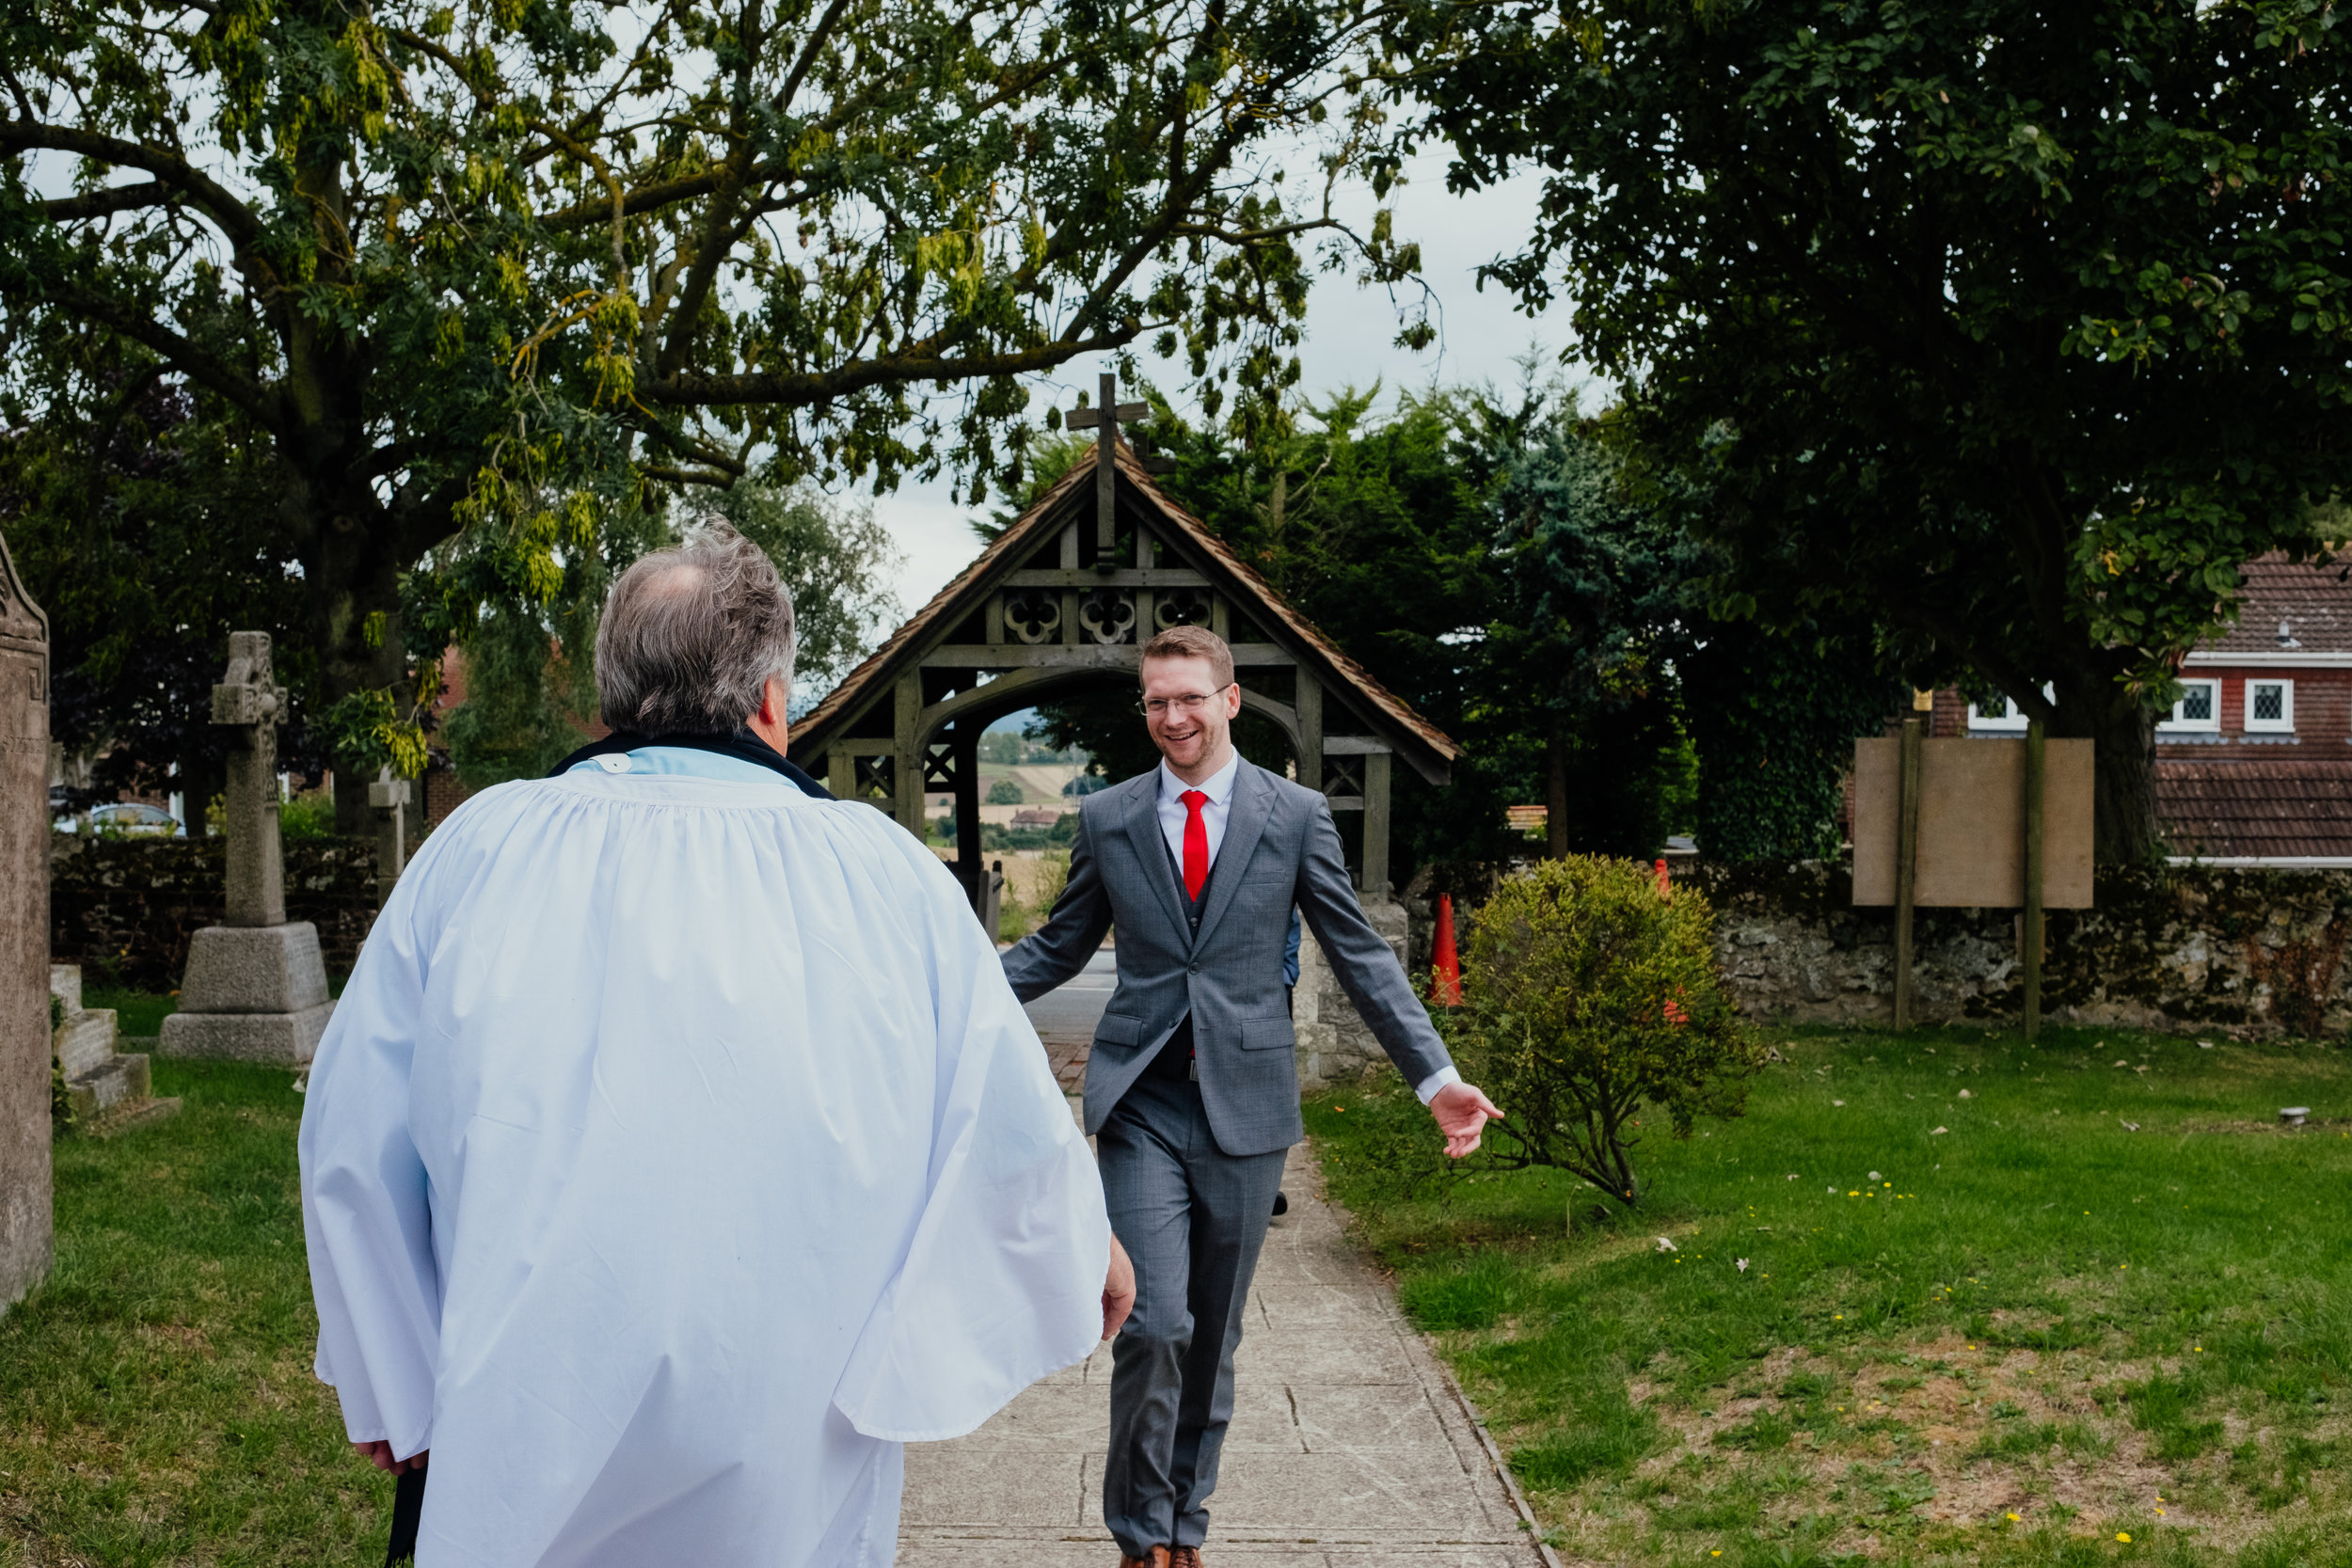 Groom walking towards priest and church